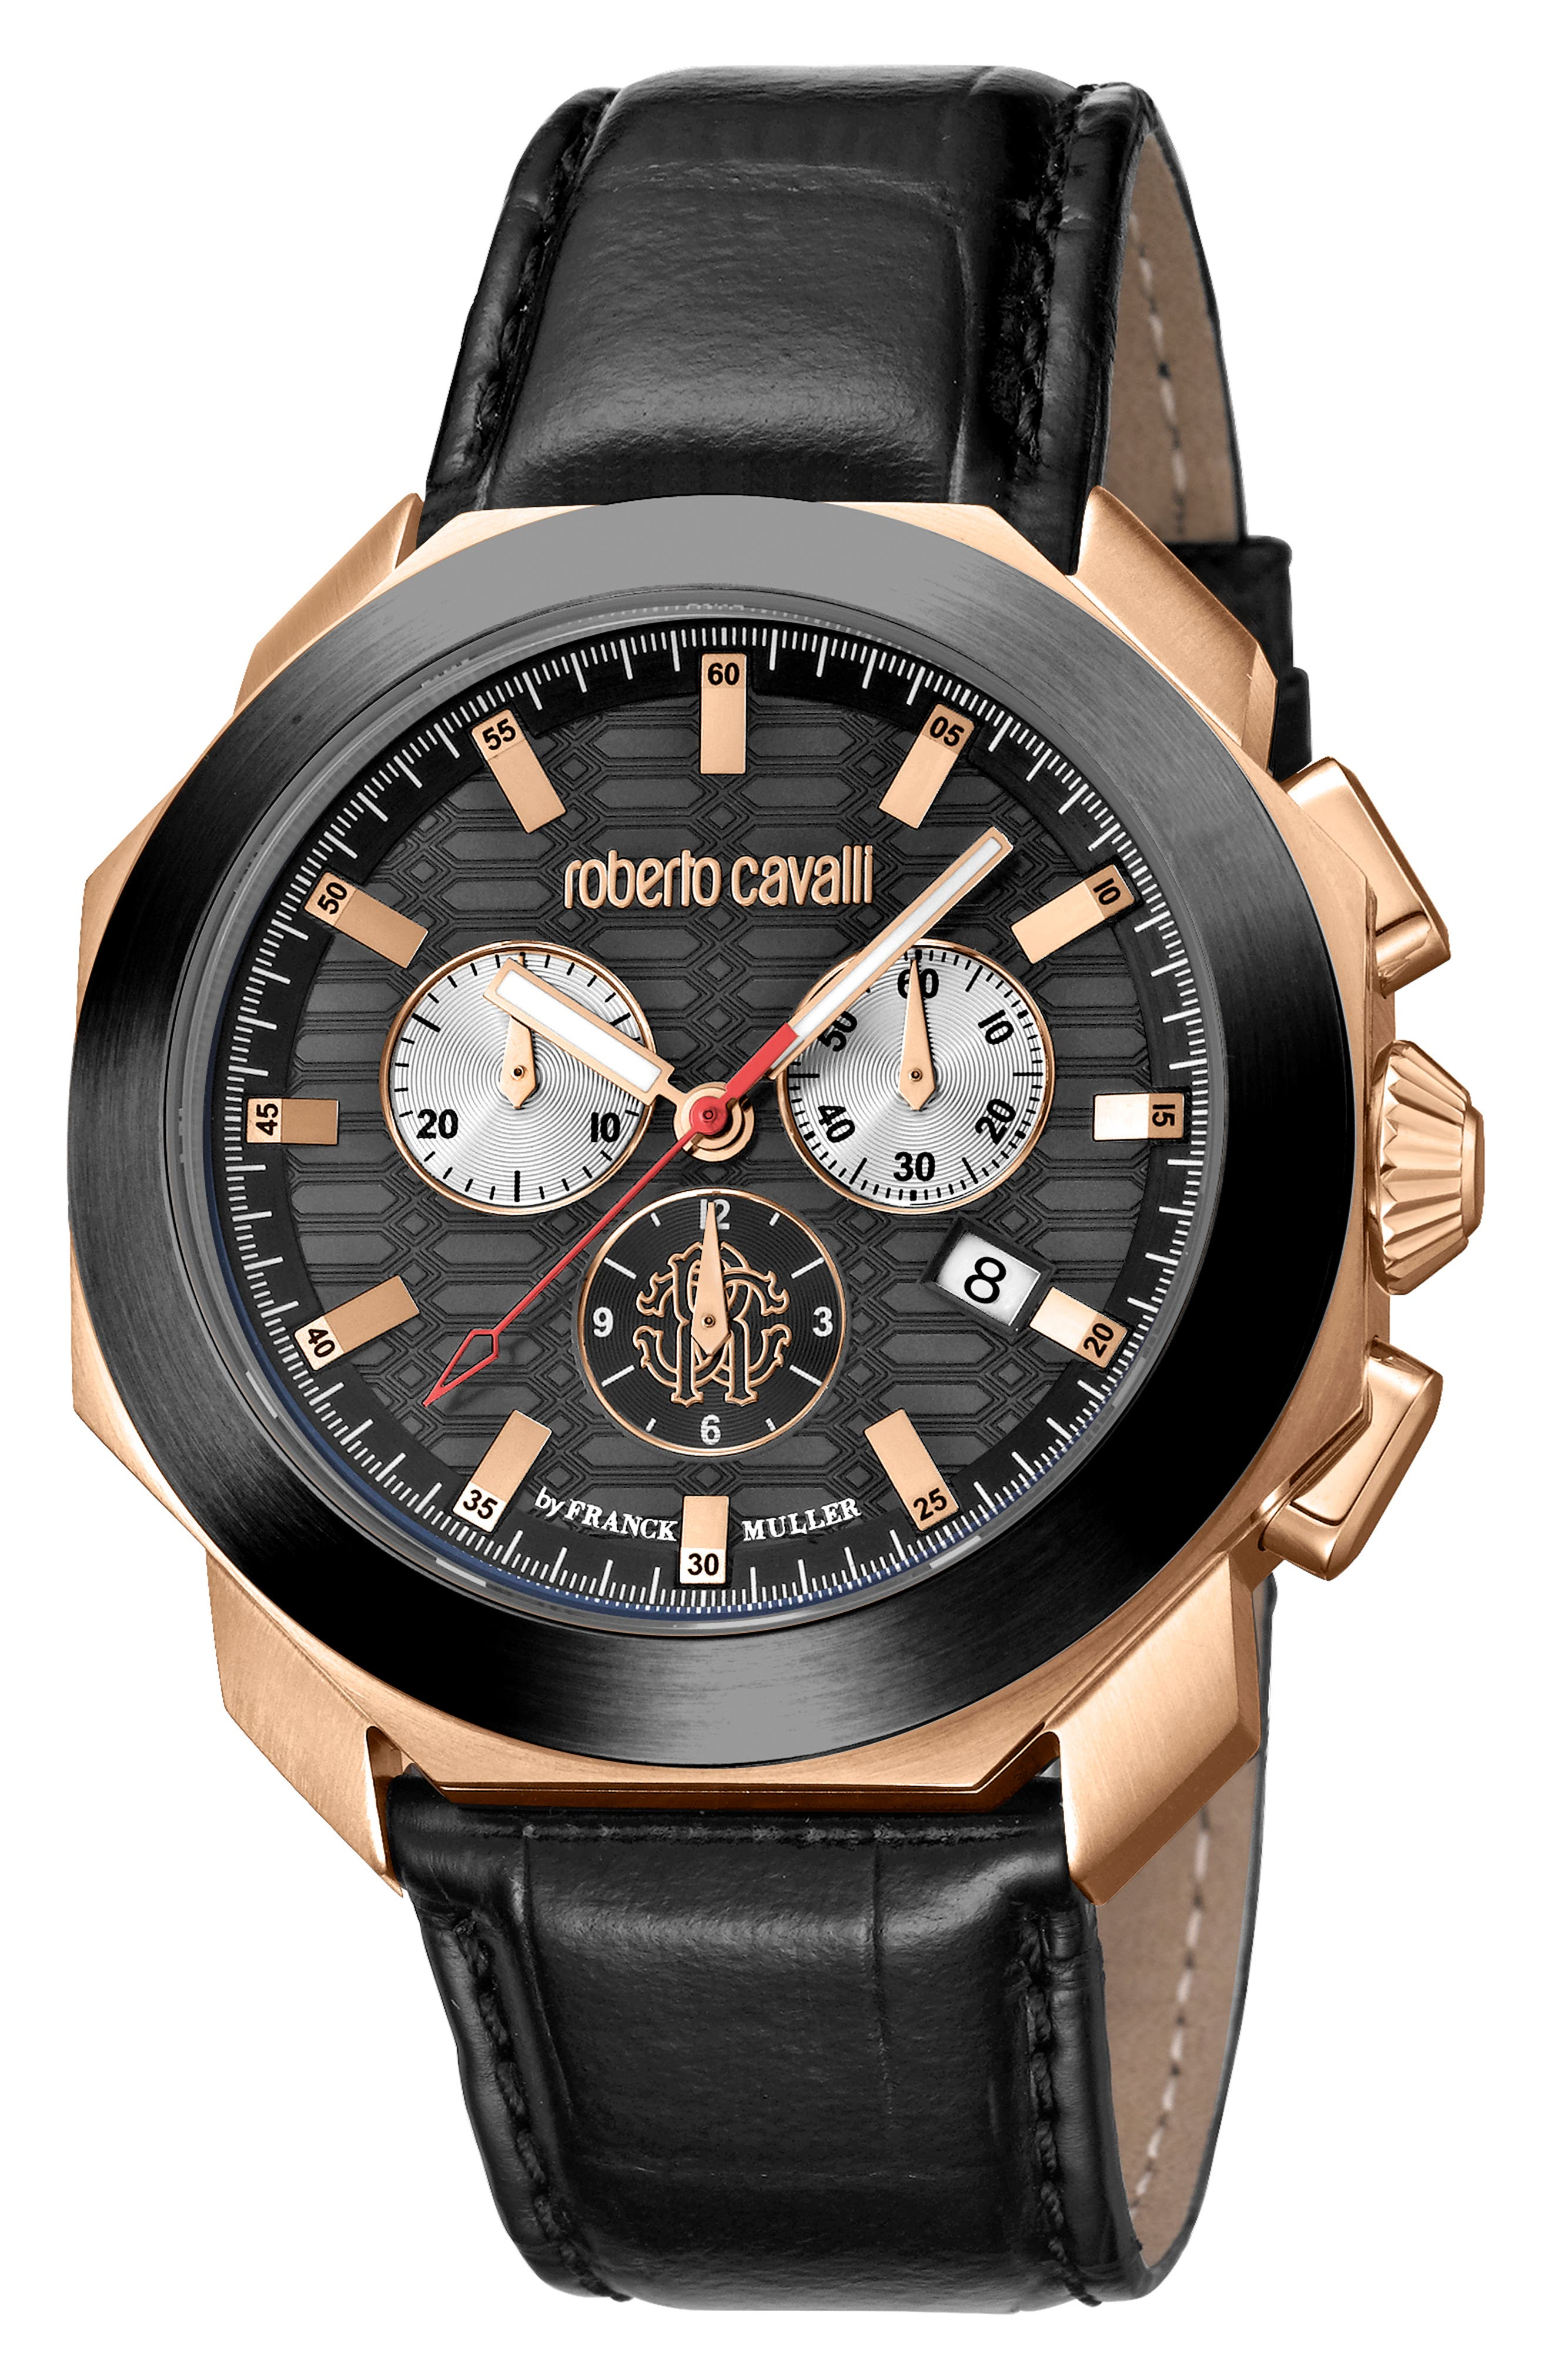 Sport Chronograph Leather Strap Watch,                         Main,                         color, BLACK/ ROSE GOLD/ BLACK